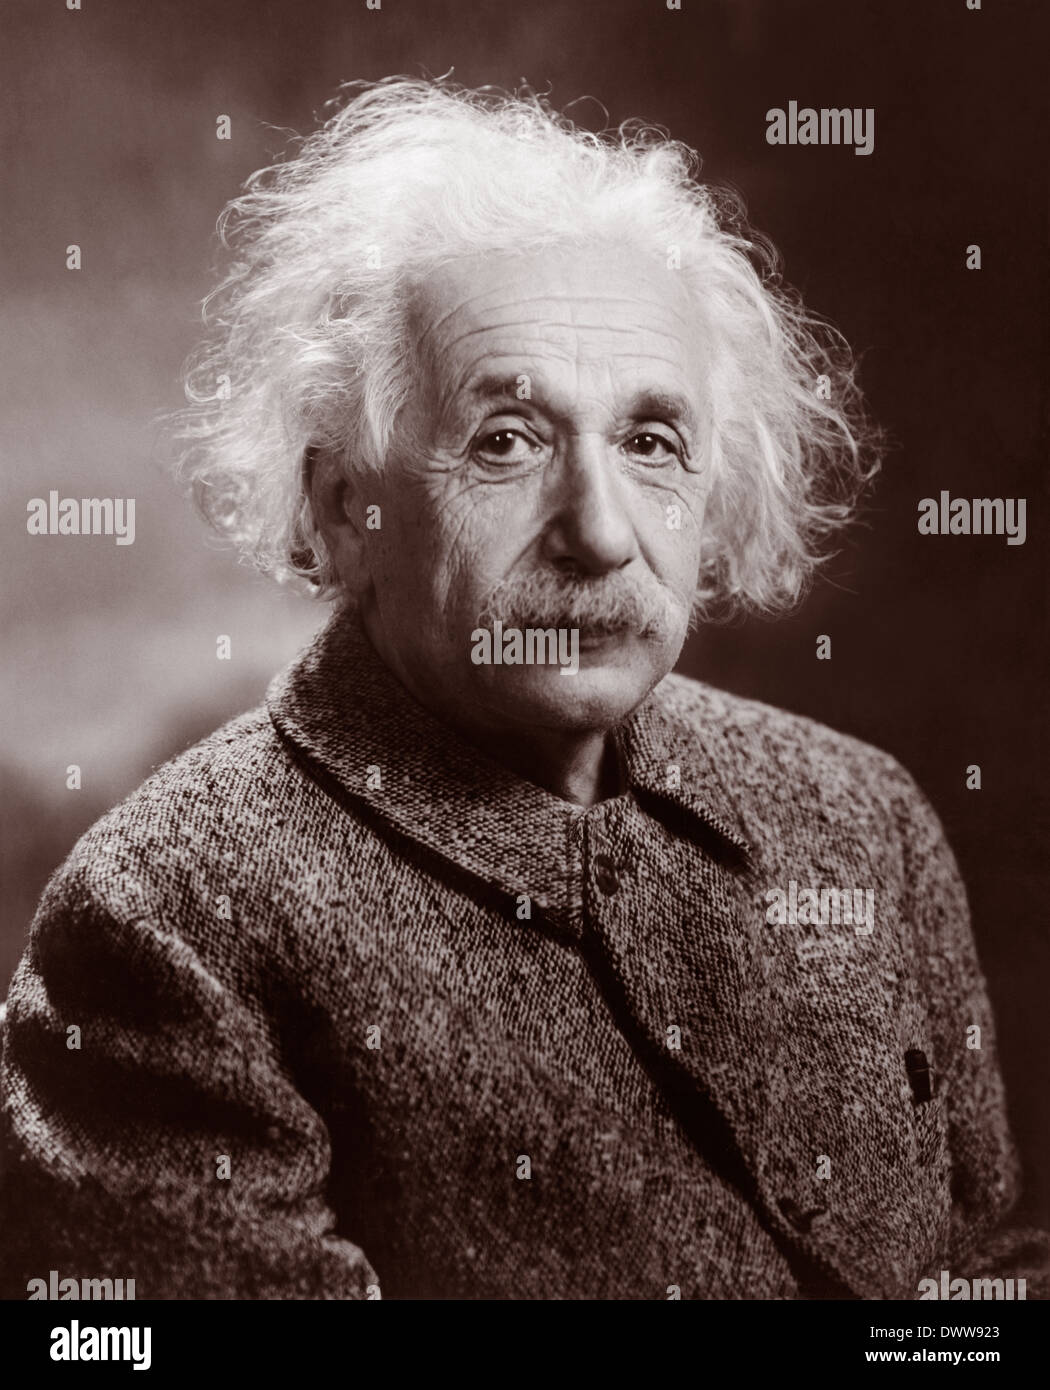 Albert Einstein – c1947 (Restored image from photograph by Orren Jack Turner). - Stock Image